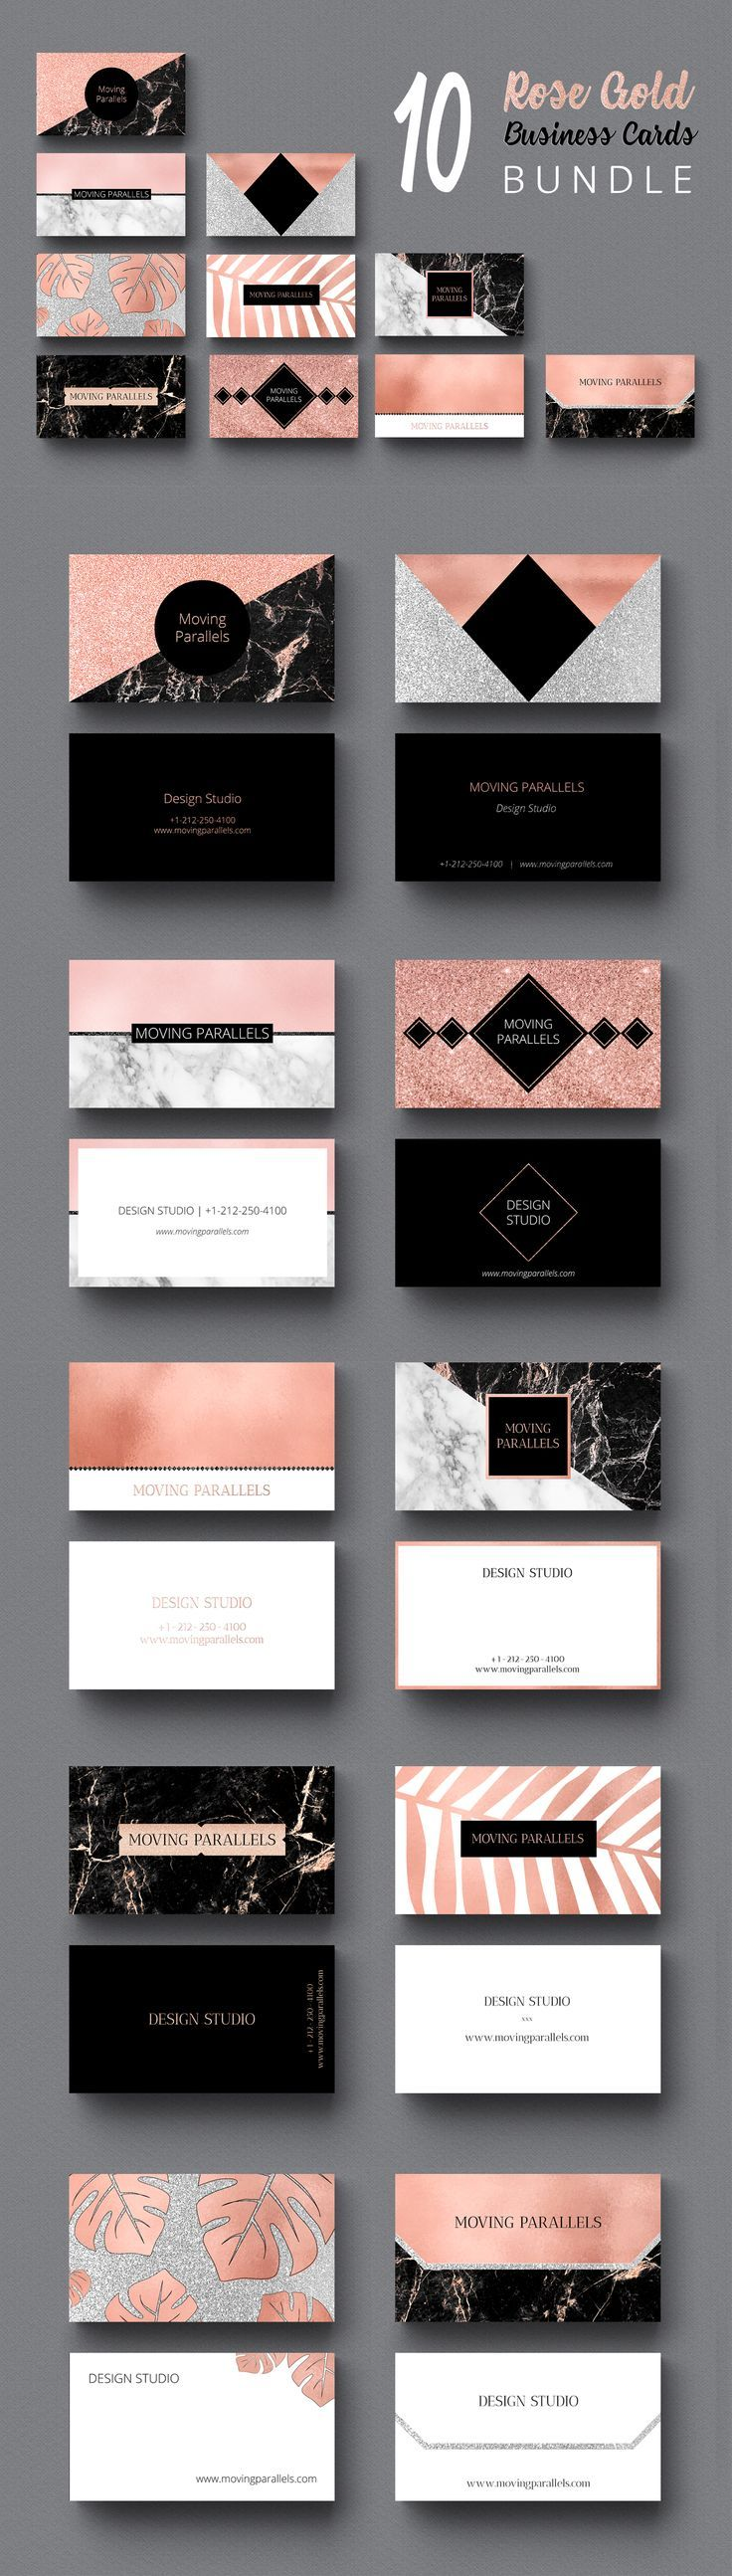 Rose Gold Business Cards Bundle just 18$ on @creativemarket  Rose Gold Business Cards BUNDLE only for 18$ It includes kit of 10 classy, sophisticated and elegant visiting card templates made in minimal style, looks professional and clean. Modern and clever design mixes several materials: rose gold foil, white and black marble and silver, copper, black glitter. You can easily customize and use templates pack for personal identity, name cards, professional branding, visit card